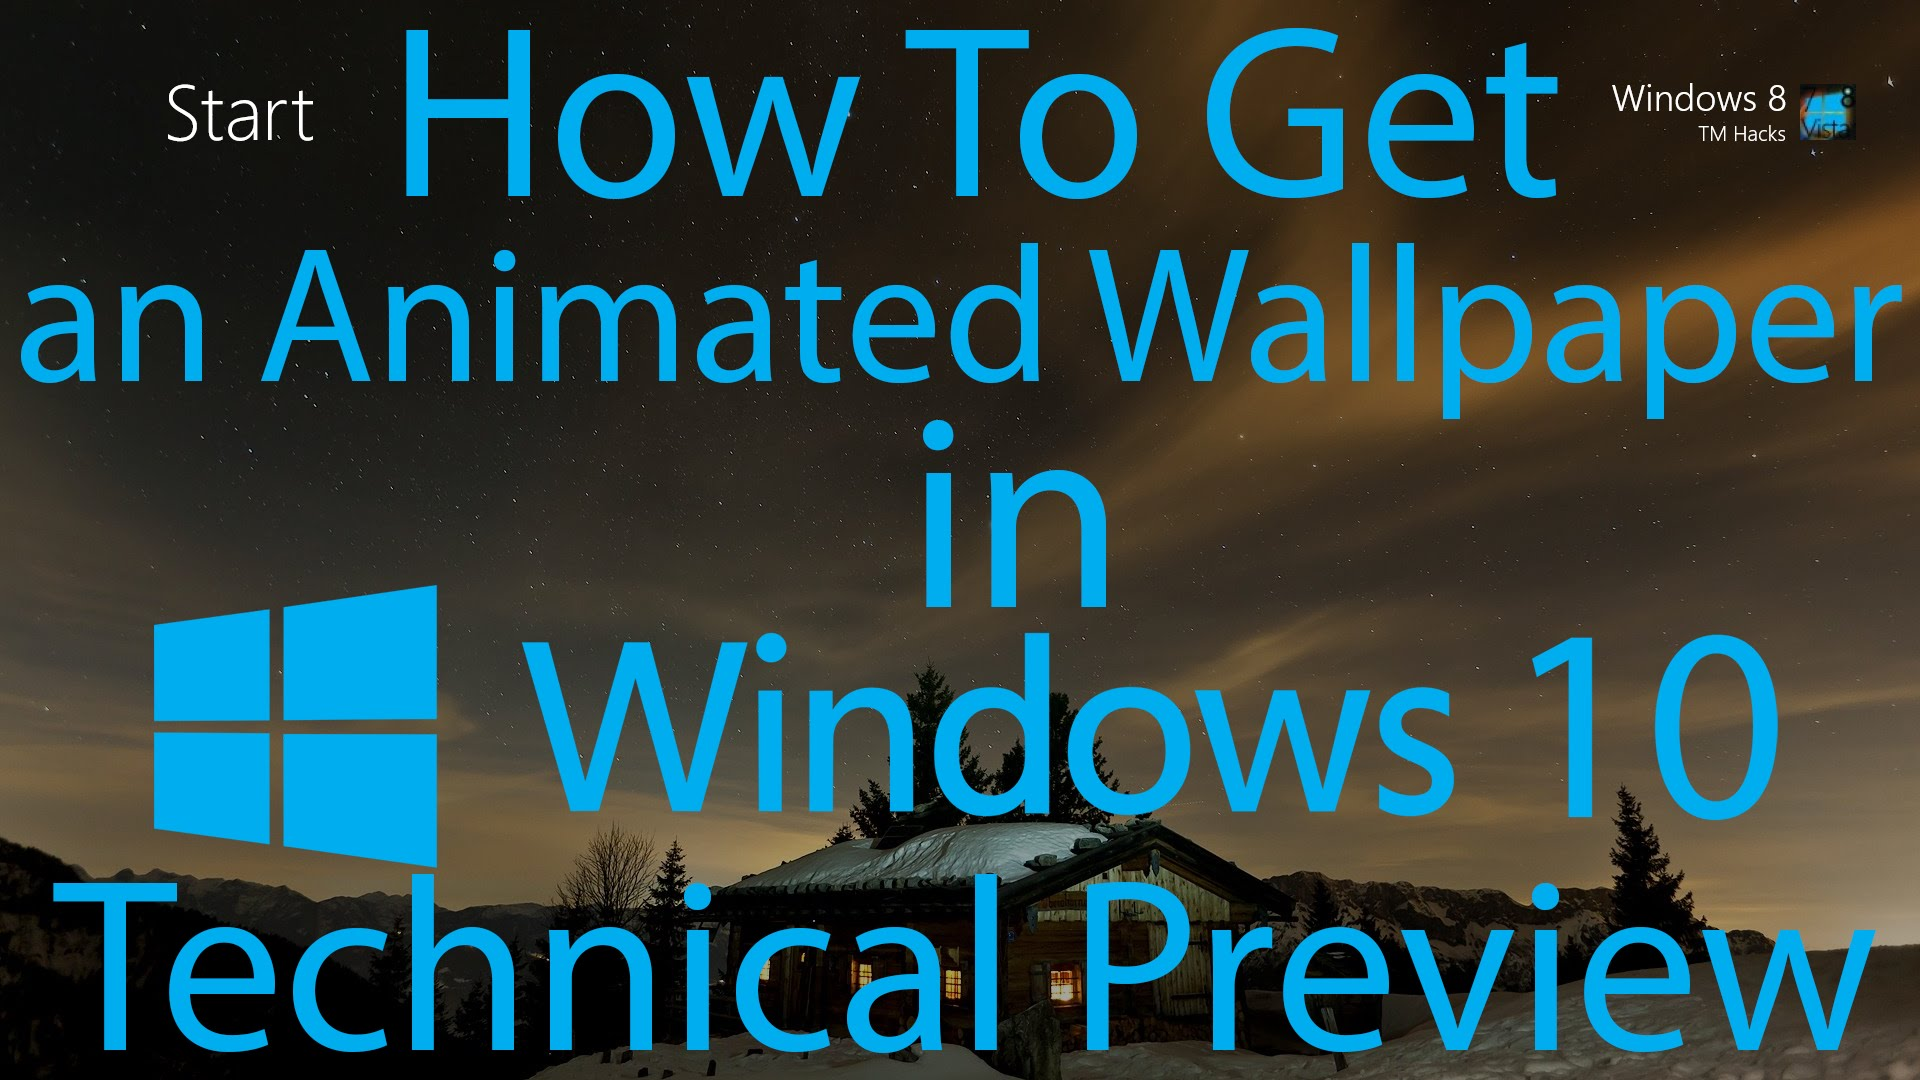 How To Have an Animated Wallpaper in Windows 10 Technical Preview 1920x1080